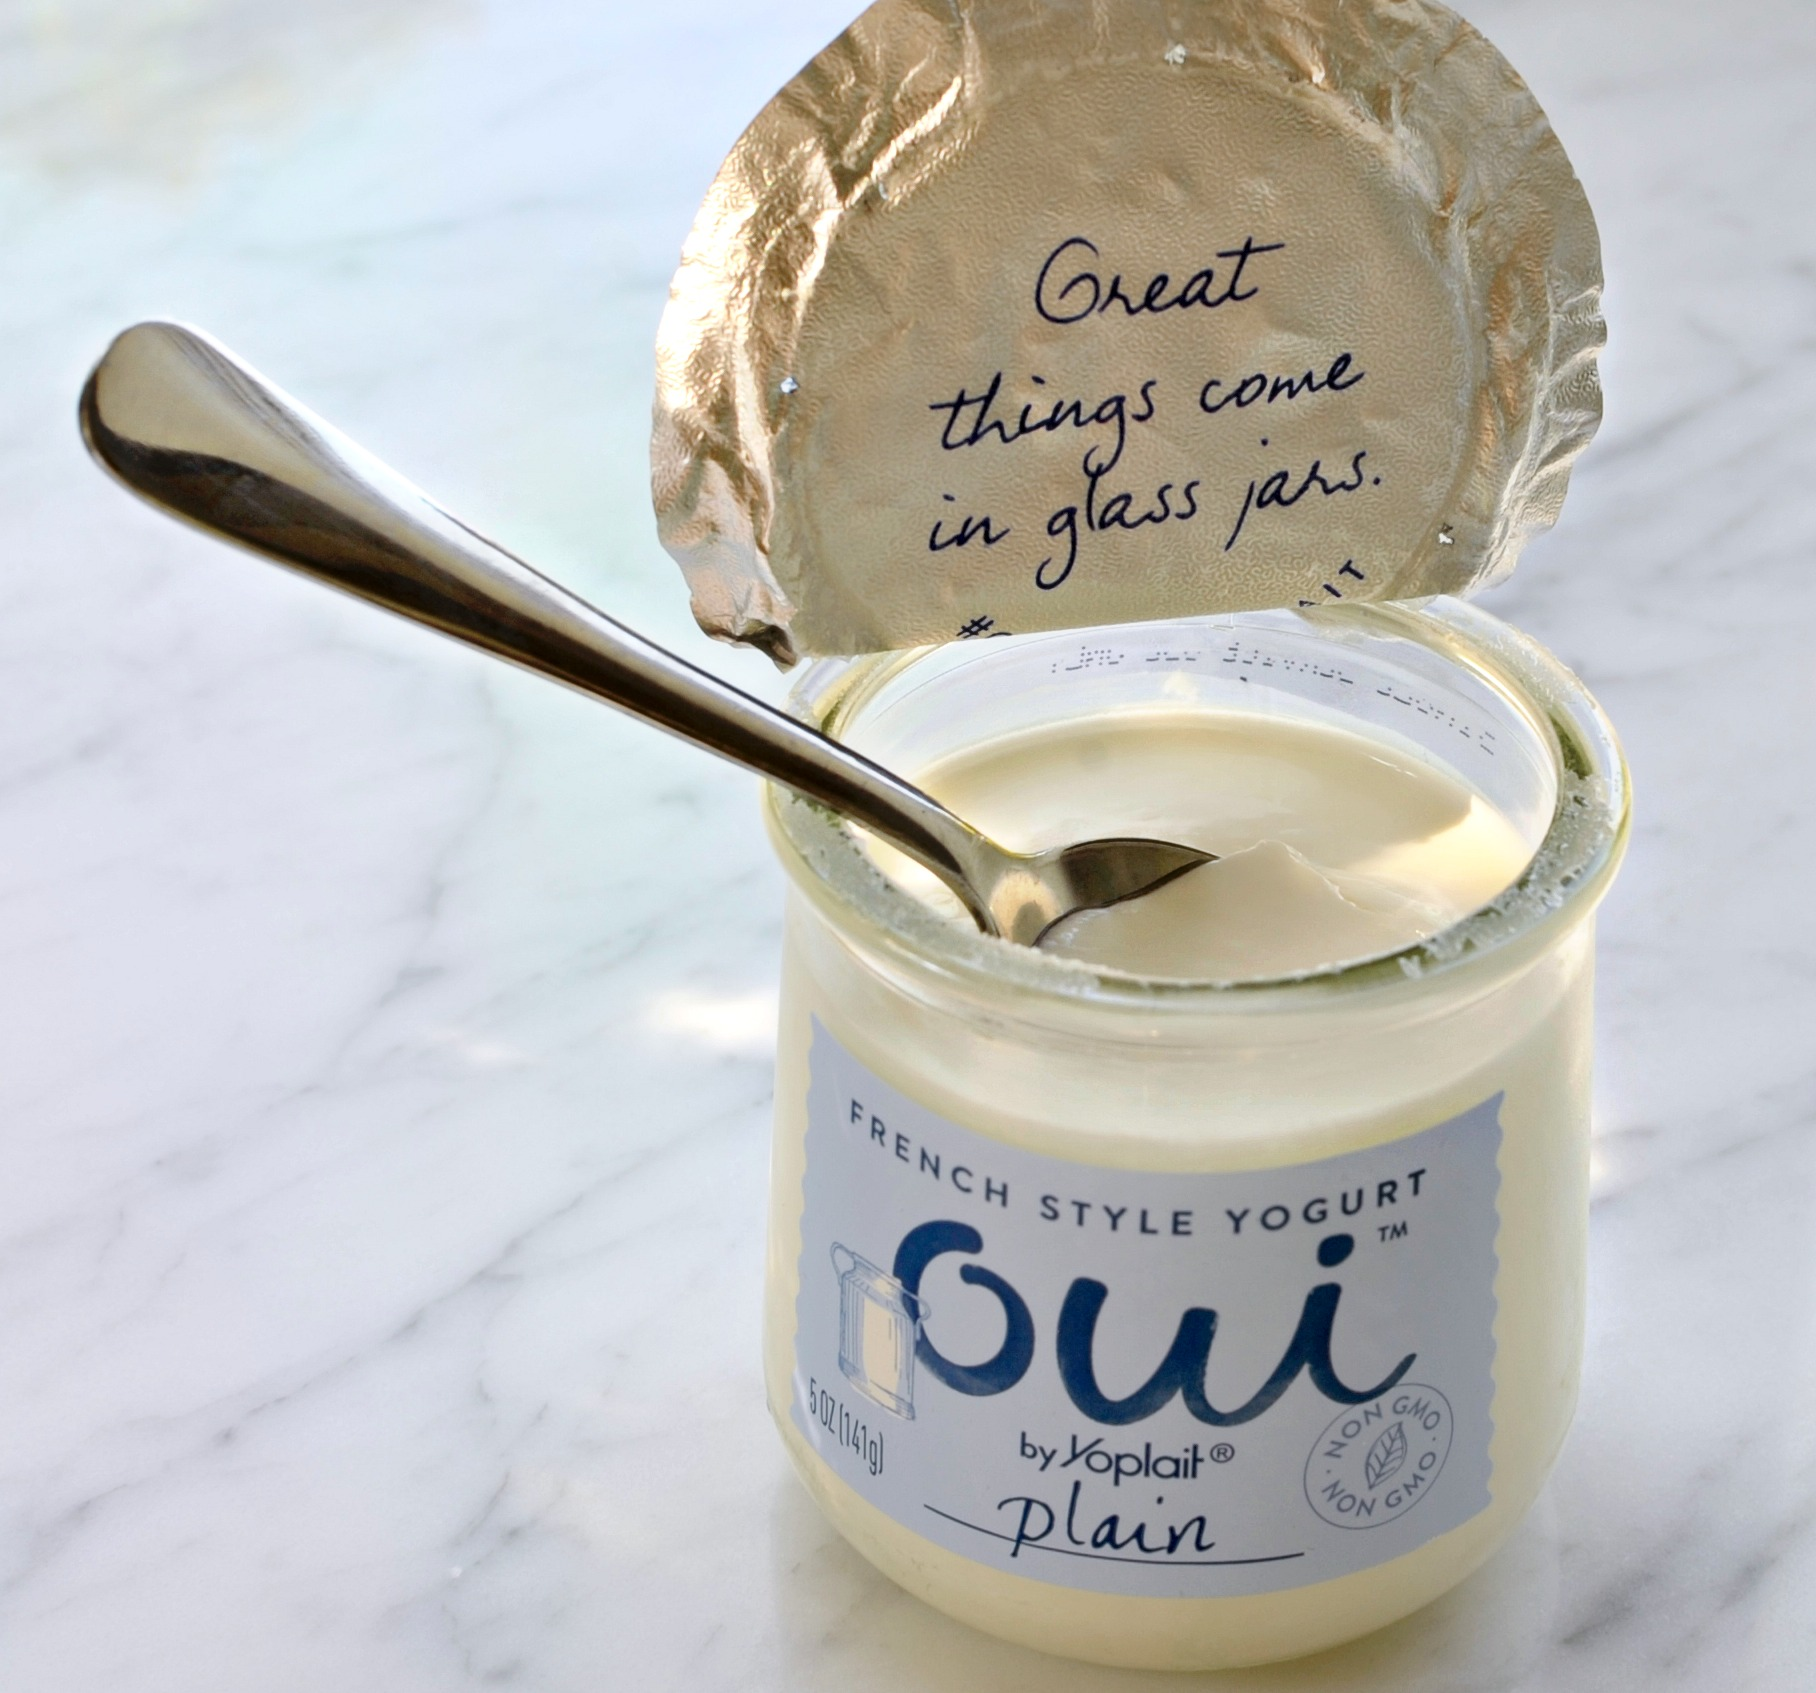 What To Do With Those Cute Little French Yogurt Pots Part Deux